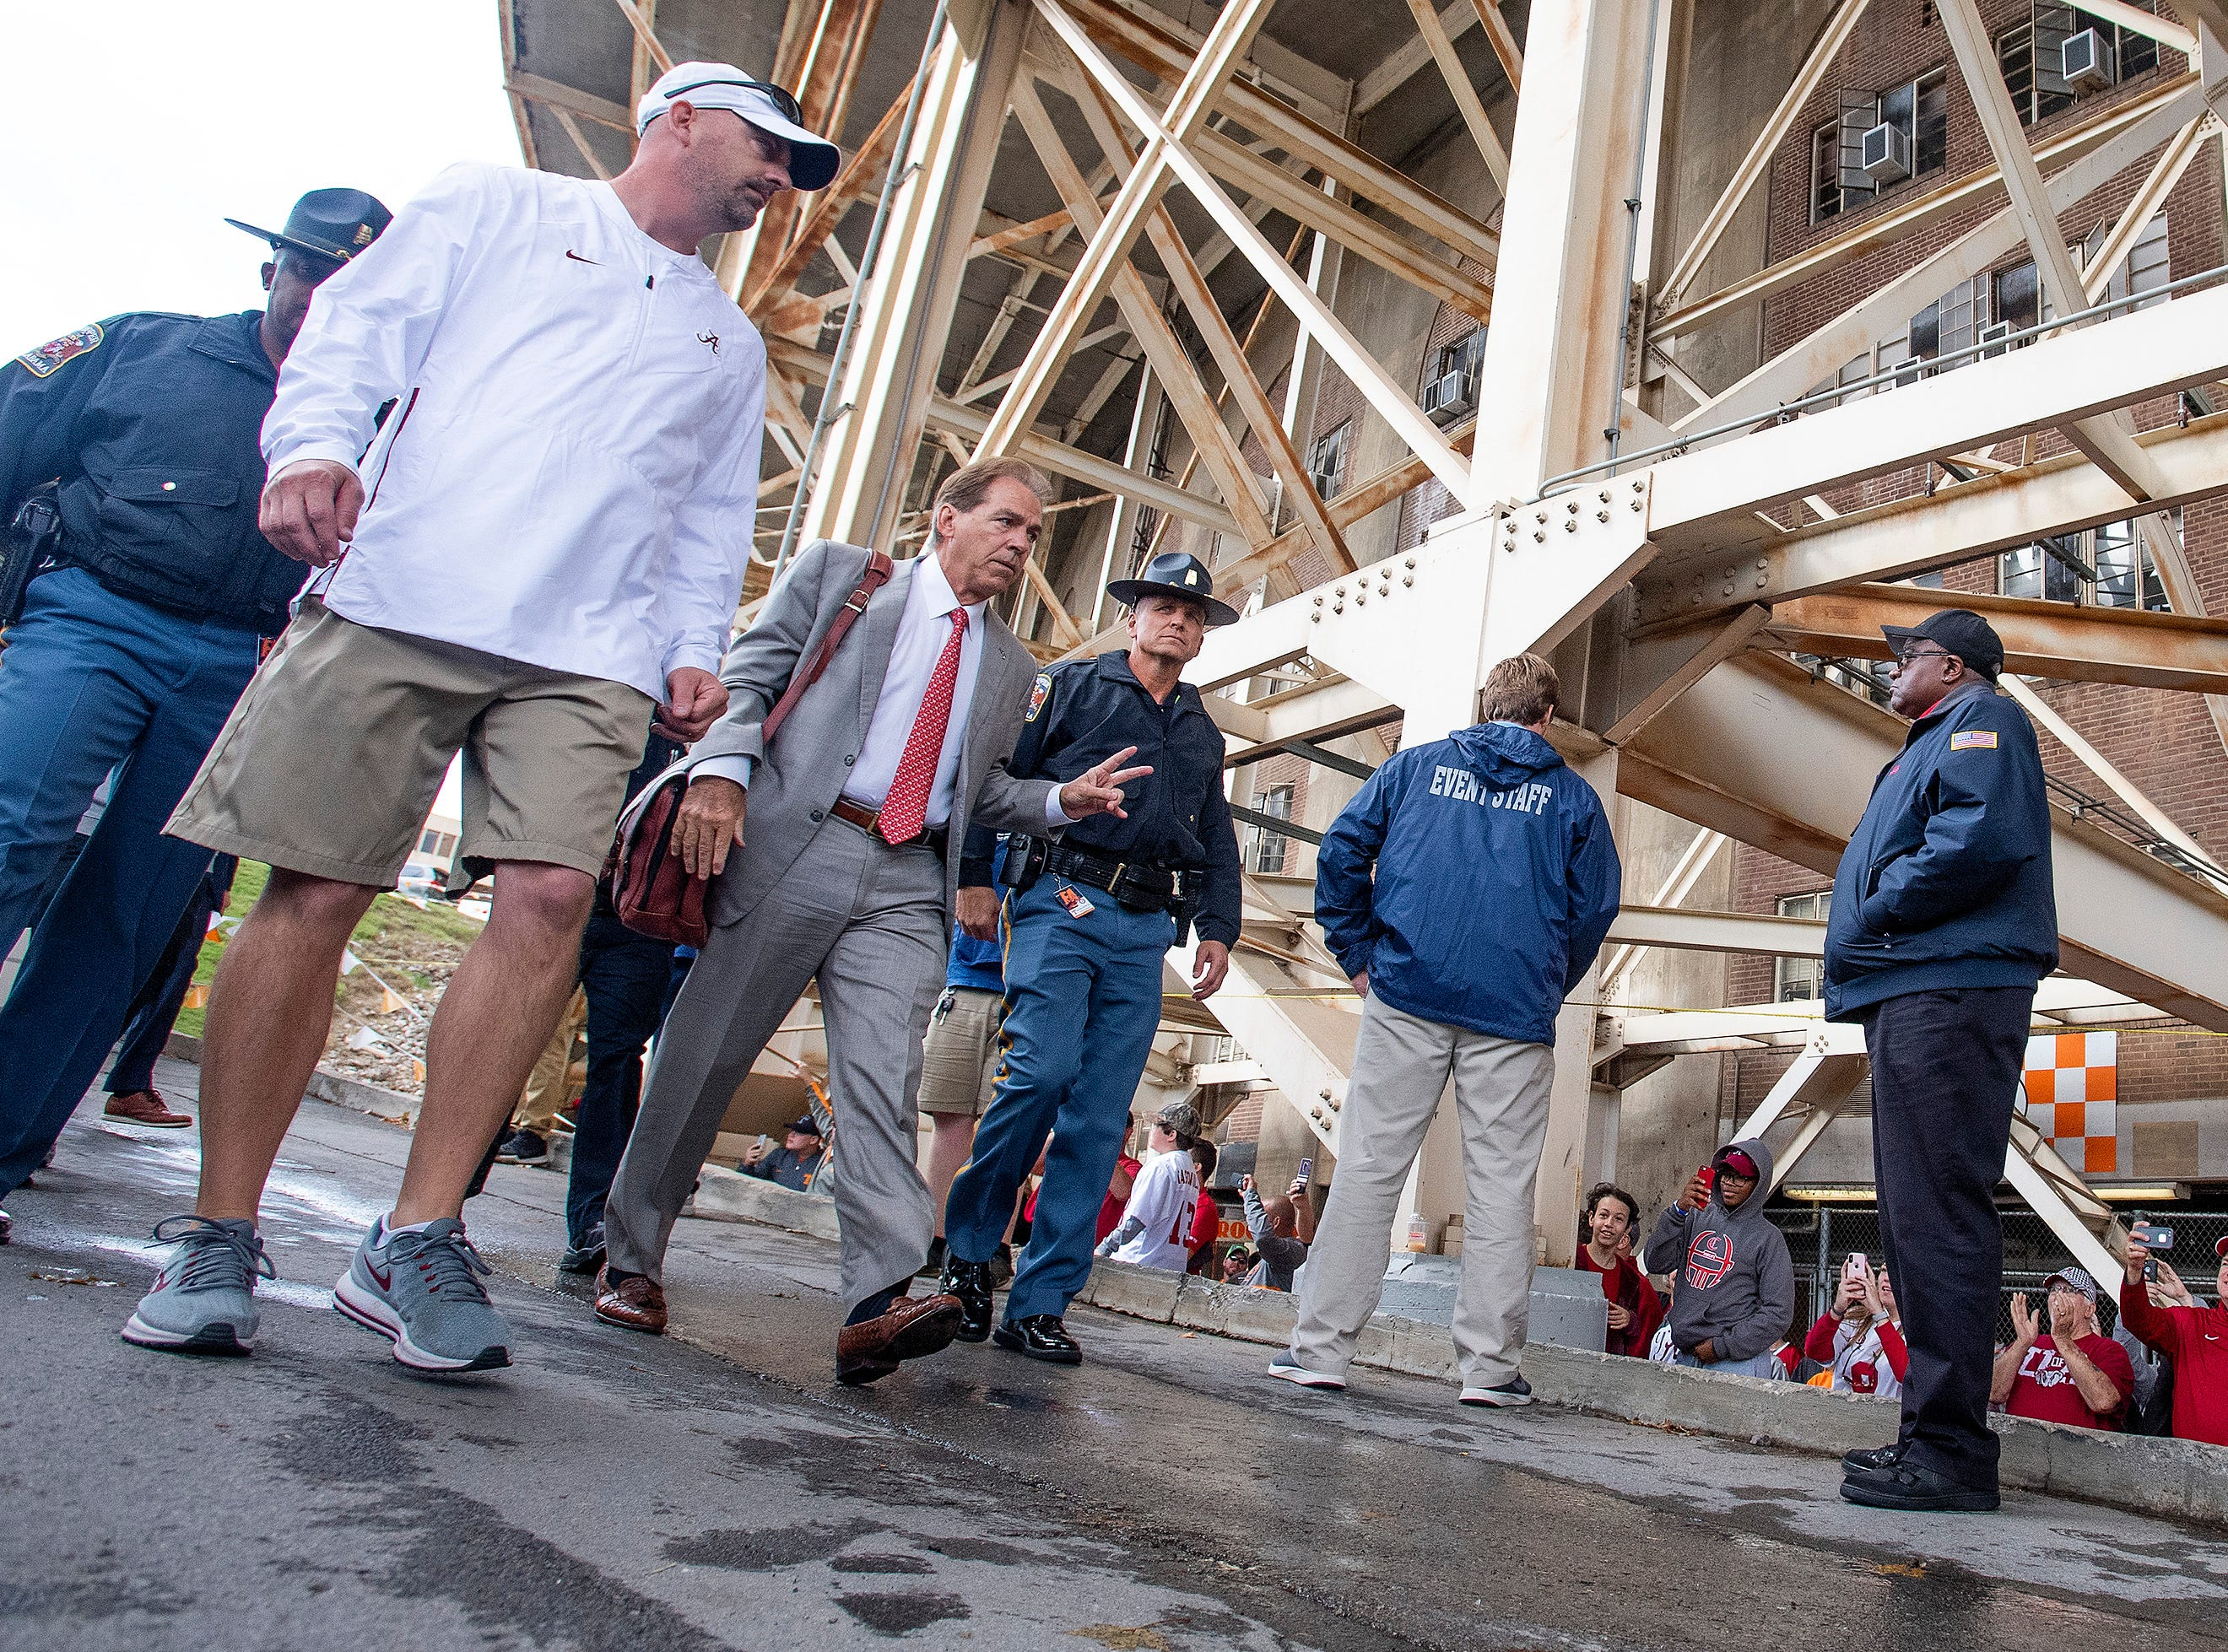 Alabama head coach Nick Saban arrives for the Tennessee game at Neyland Stadium in Knoxville, Tn., on Saturday October 20, 2018.